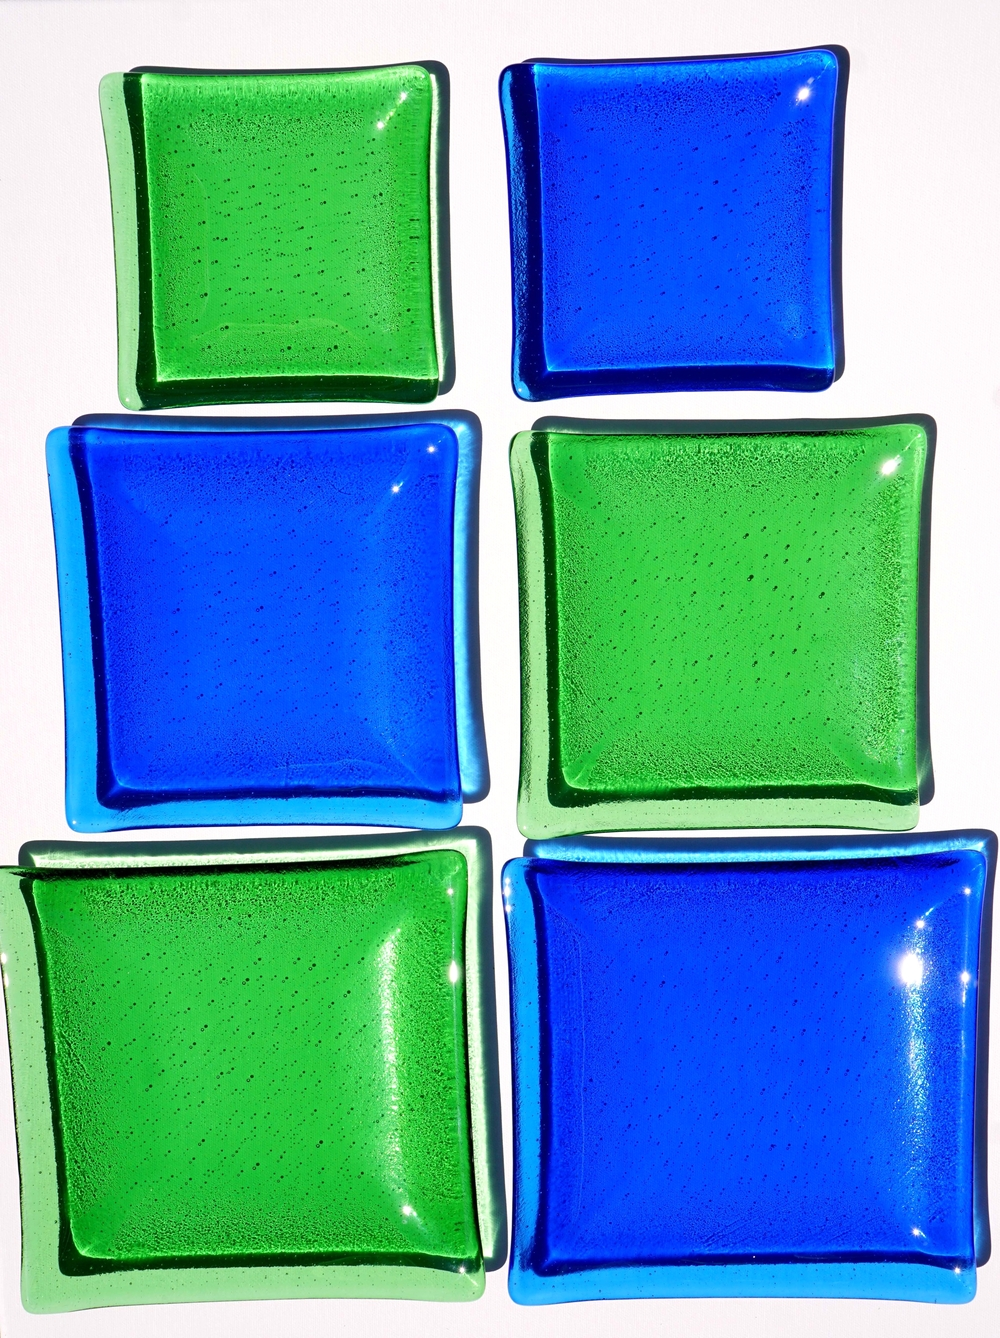 Six plates green and blue.jpg